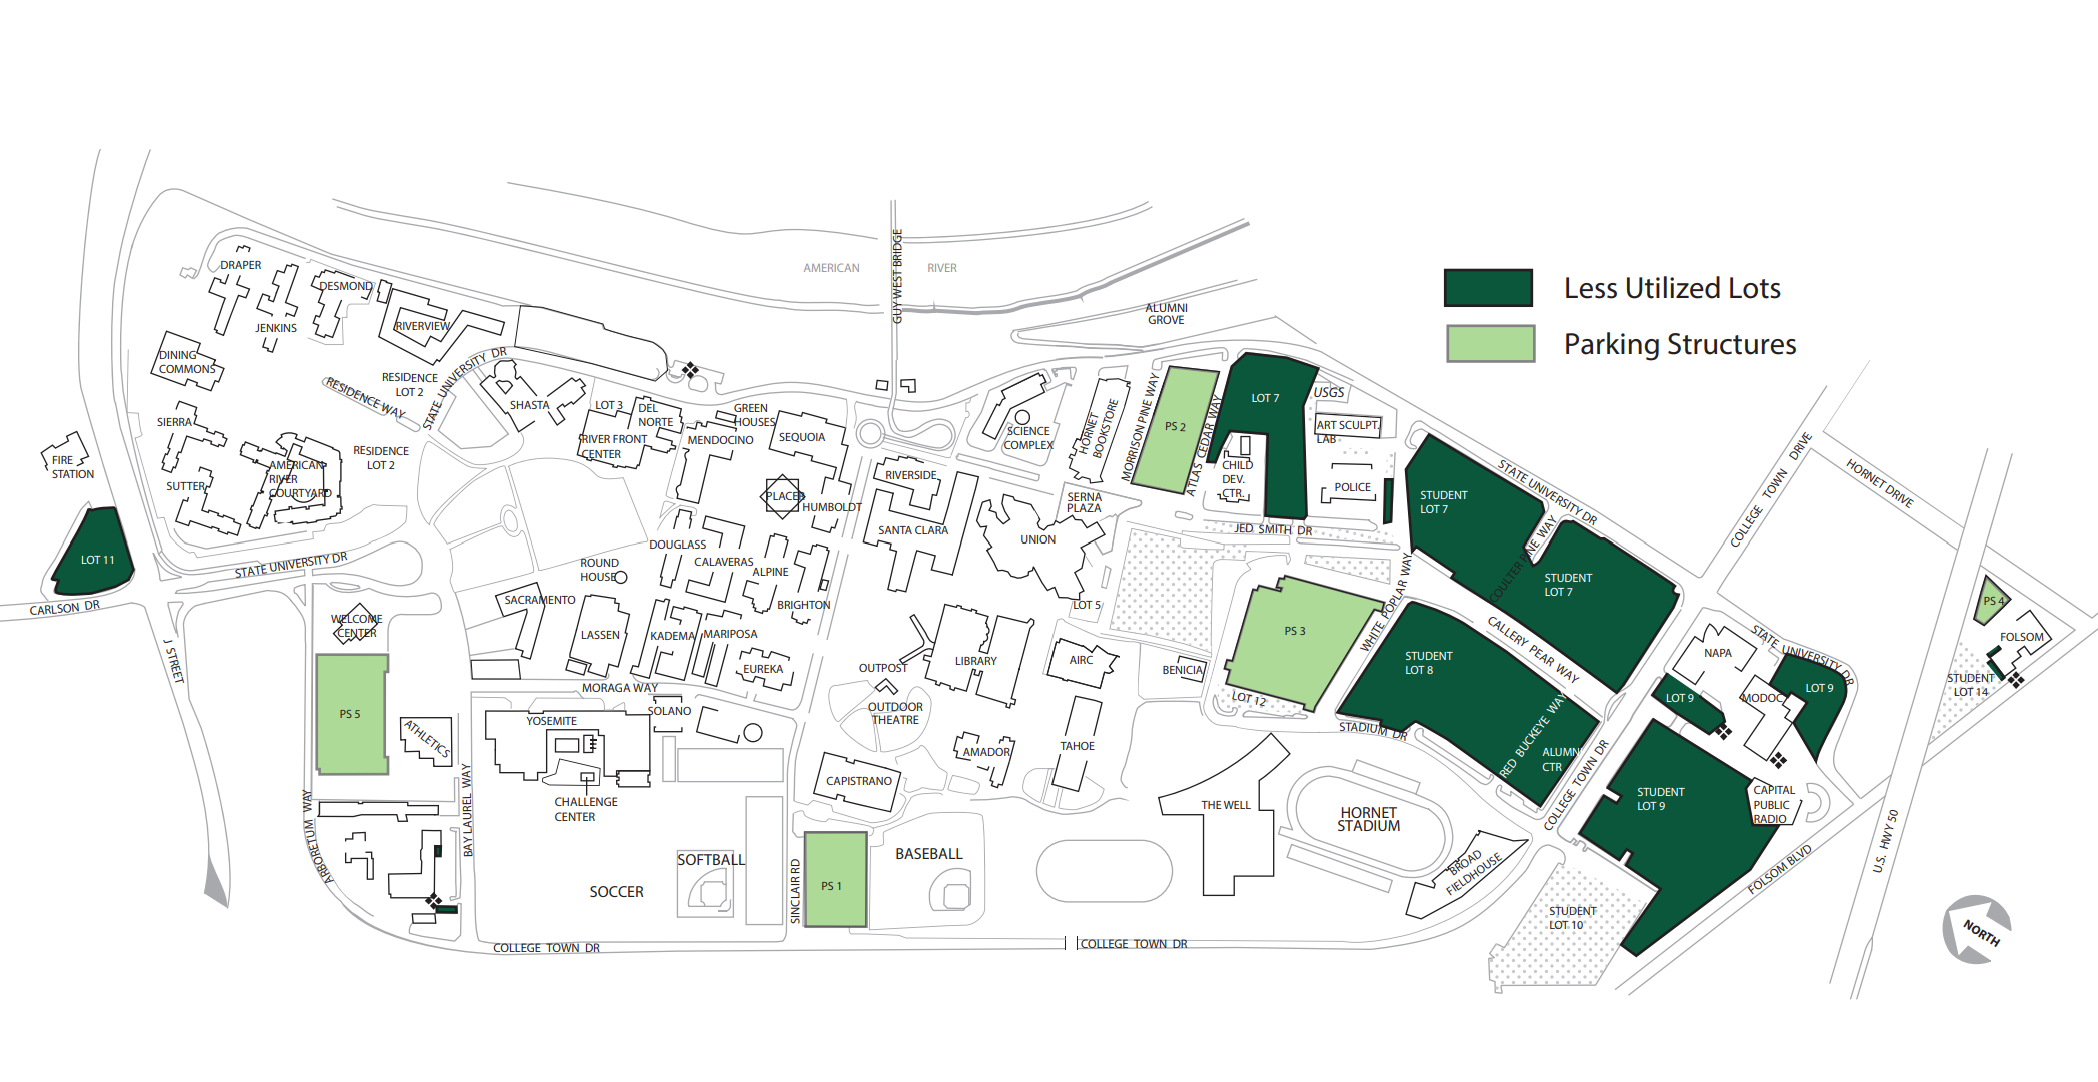 dixie state university campus map University Parking Plentiful As Off Campus Rules Change dixie state university campus map